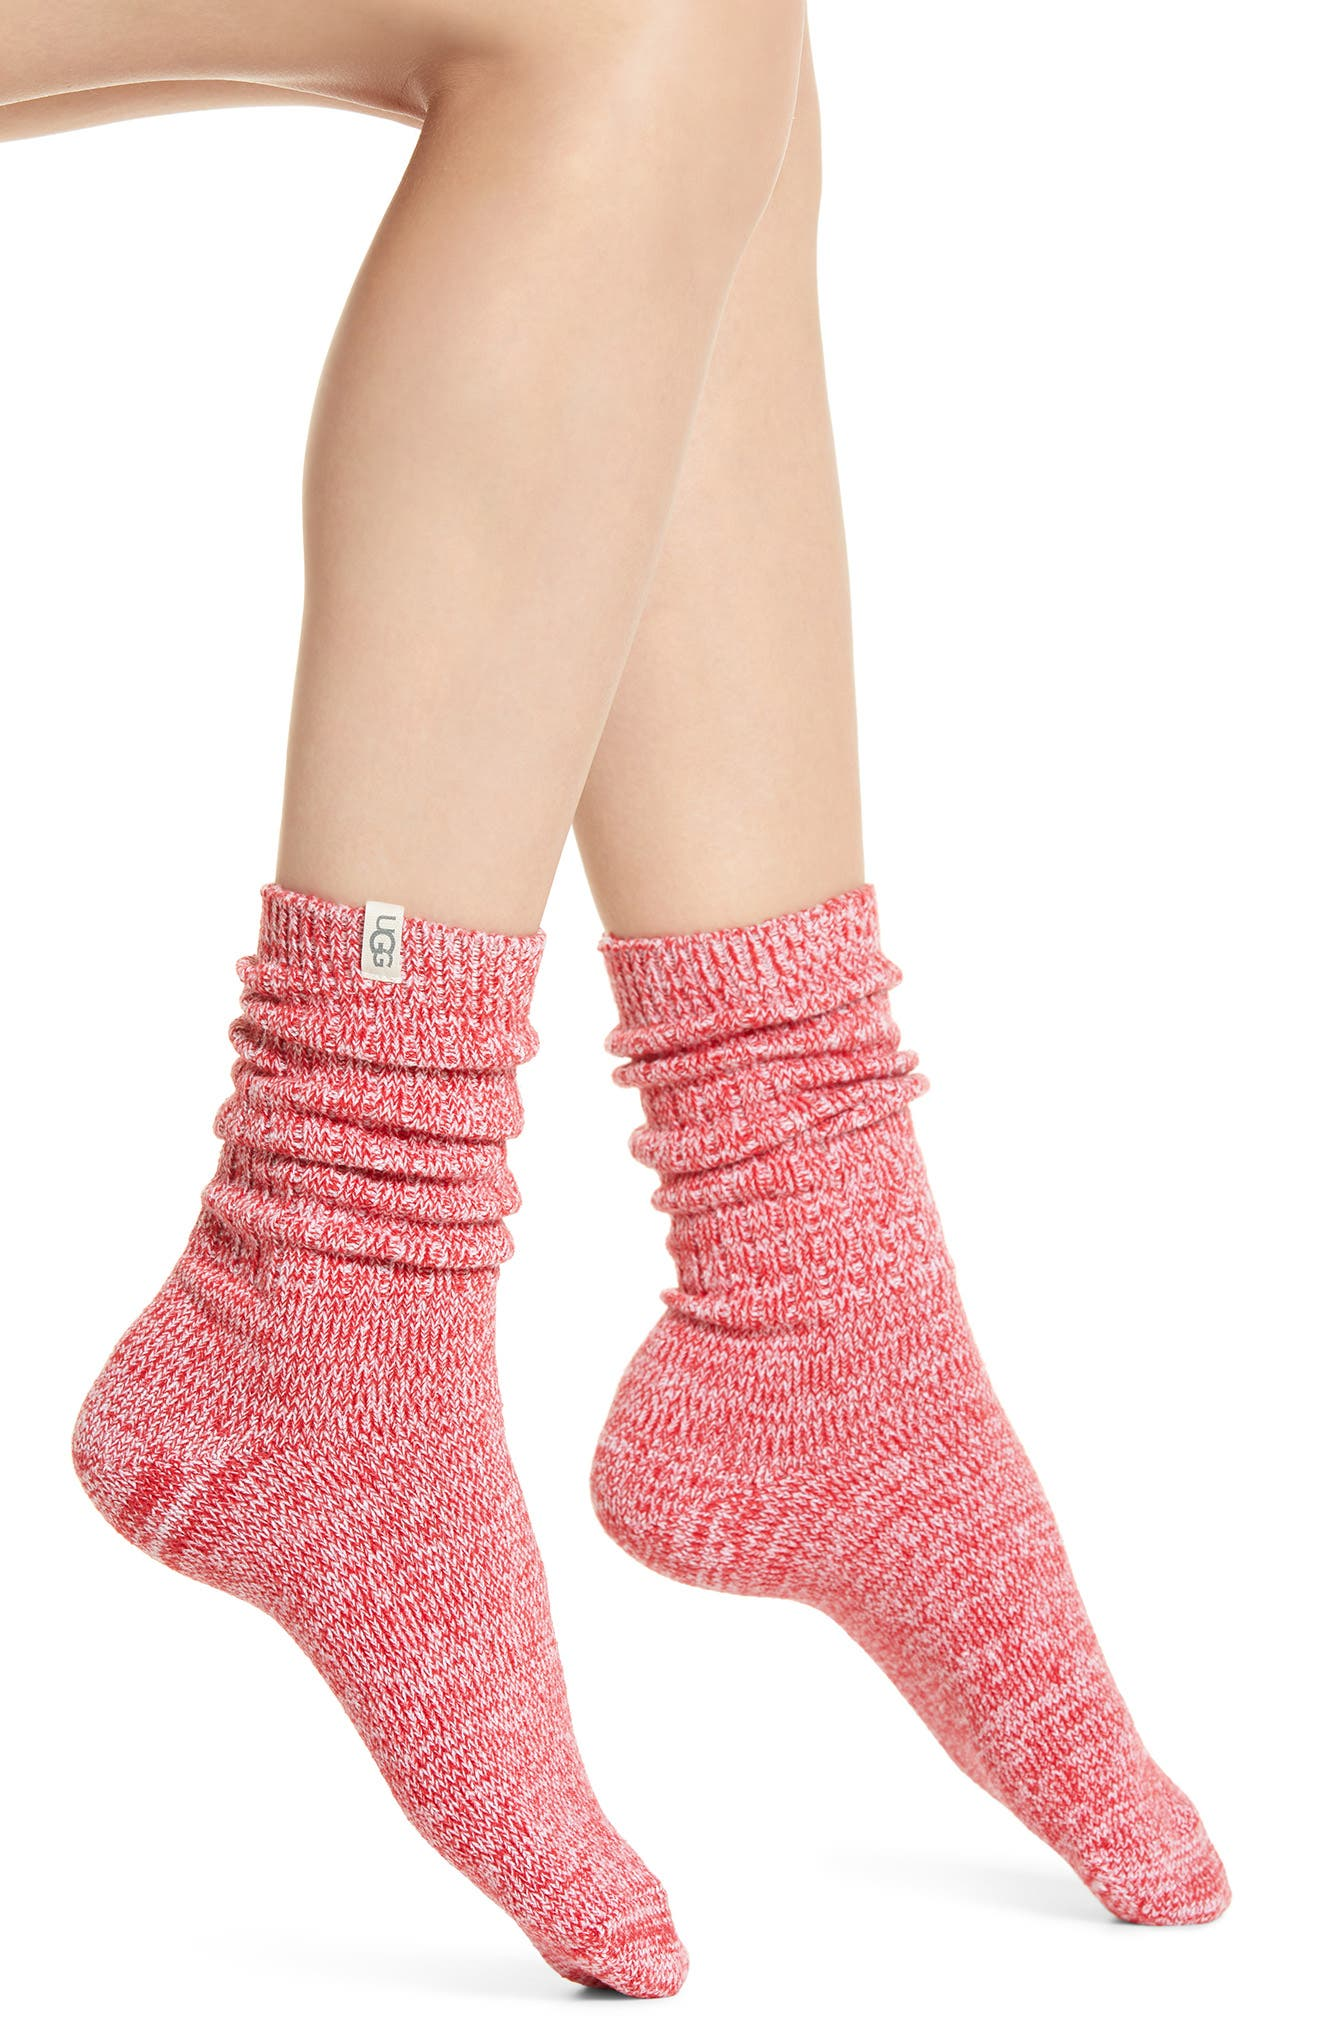 Soft, stretchy ribbed socks have a cozy slouchy fit through the ankles and reinforced heels and toes for durability. Style Name: UGG Ribbed Crew Socks. Style Number: 5207997. Available in stores.